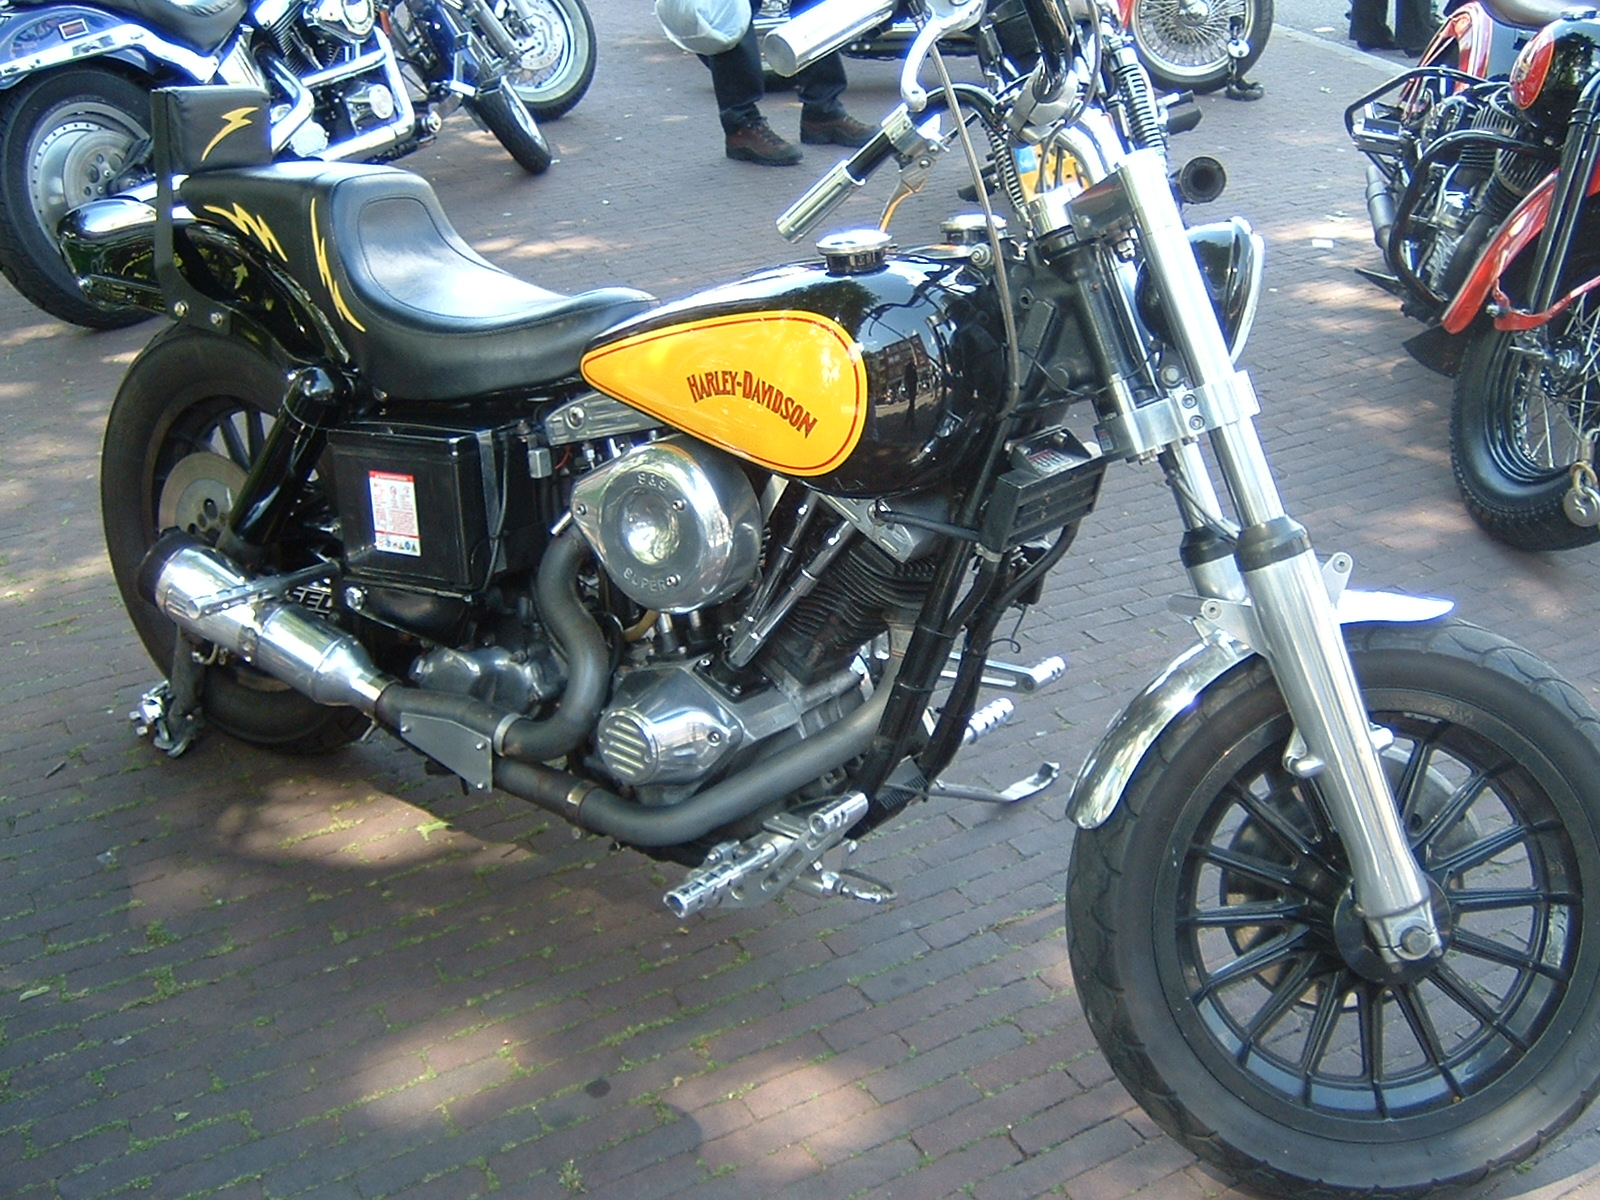 1945 HarleyDavidson Motorcycle Photos and Specs